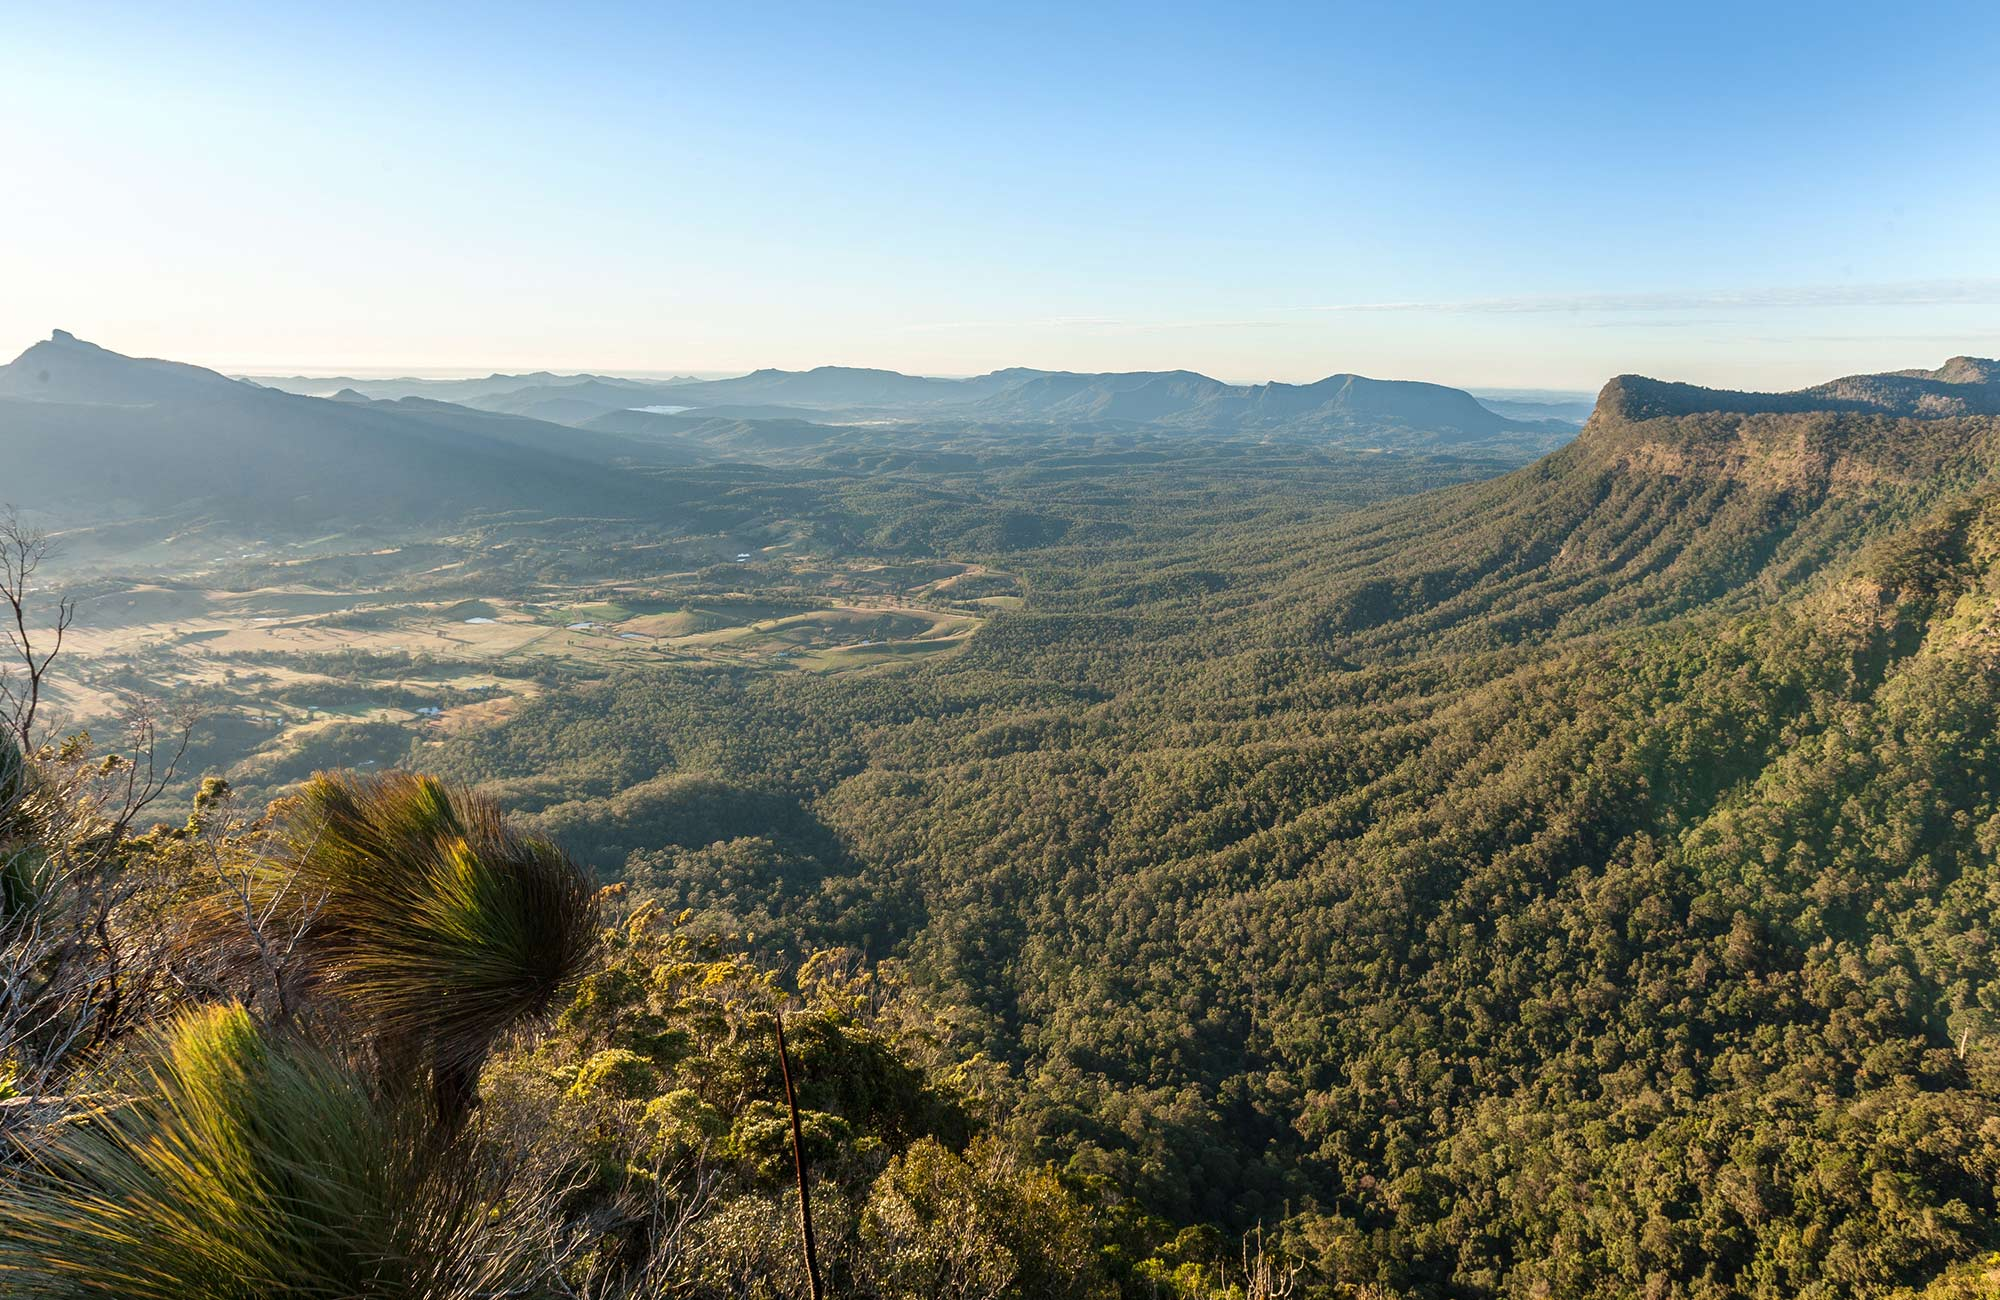 Views of Tweed Valley and Wollumbin seen from Pinnacle lookout, Border Ranges National Park. Photo credit: Murray Vanderveer © DPIE